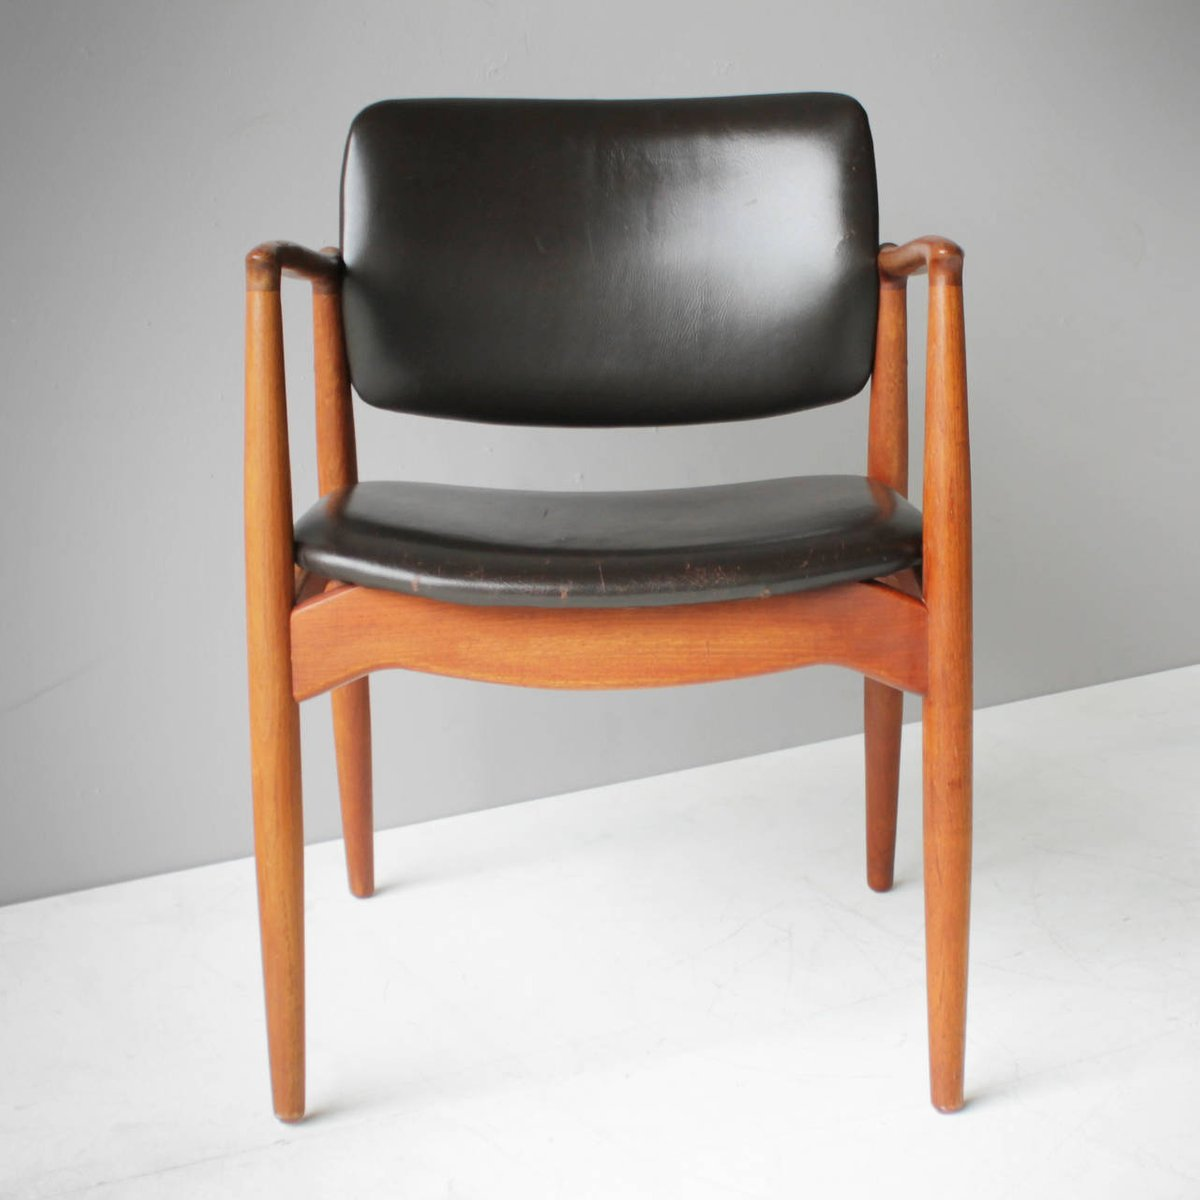 Teak And Leather Captainu0027s Chair By Eric Buck For Ø. Mobler, 1955